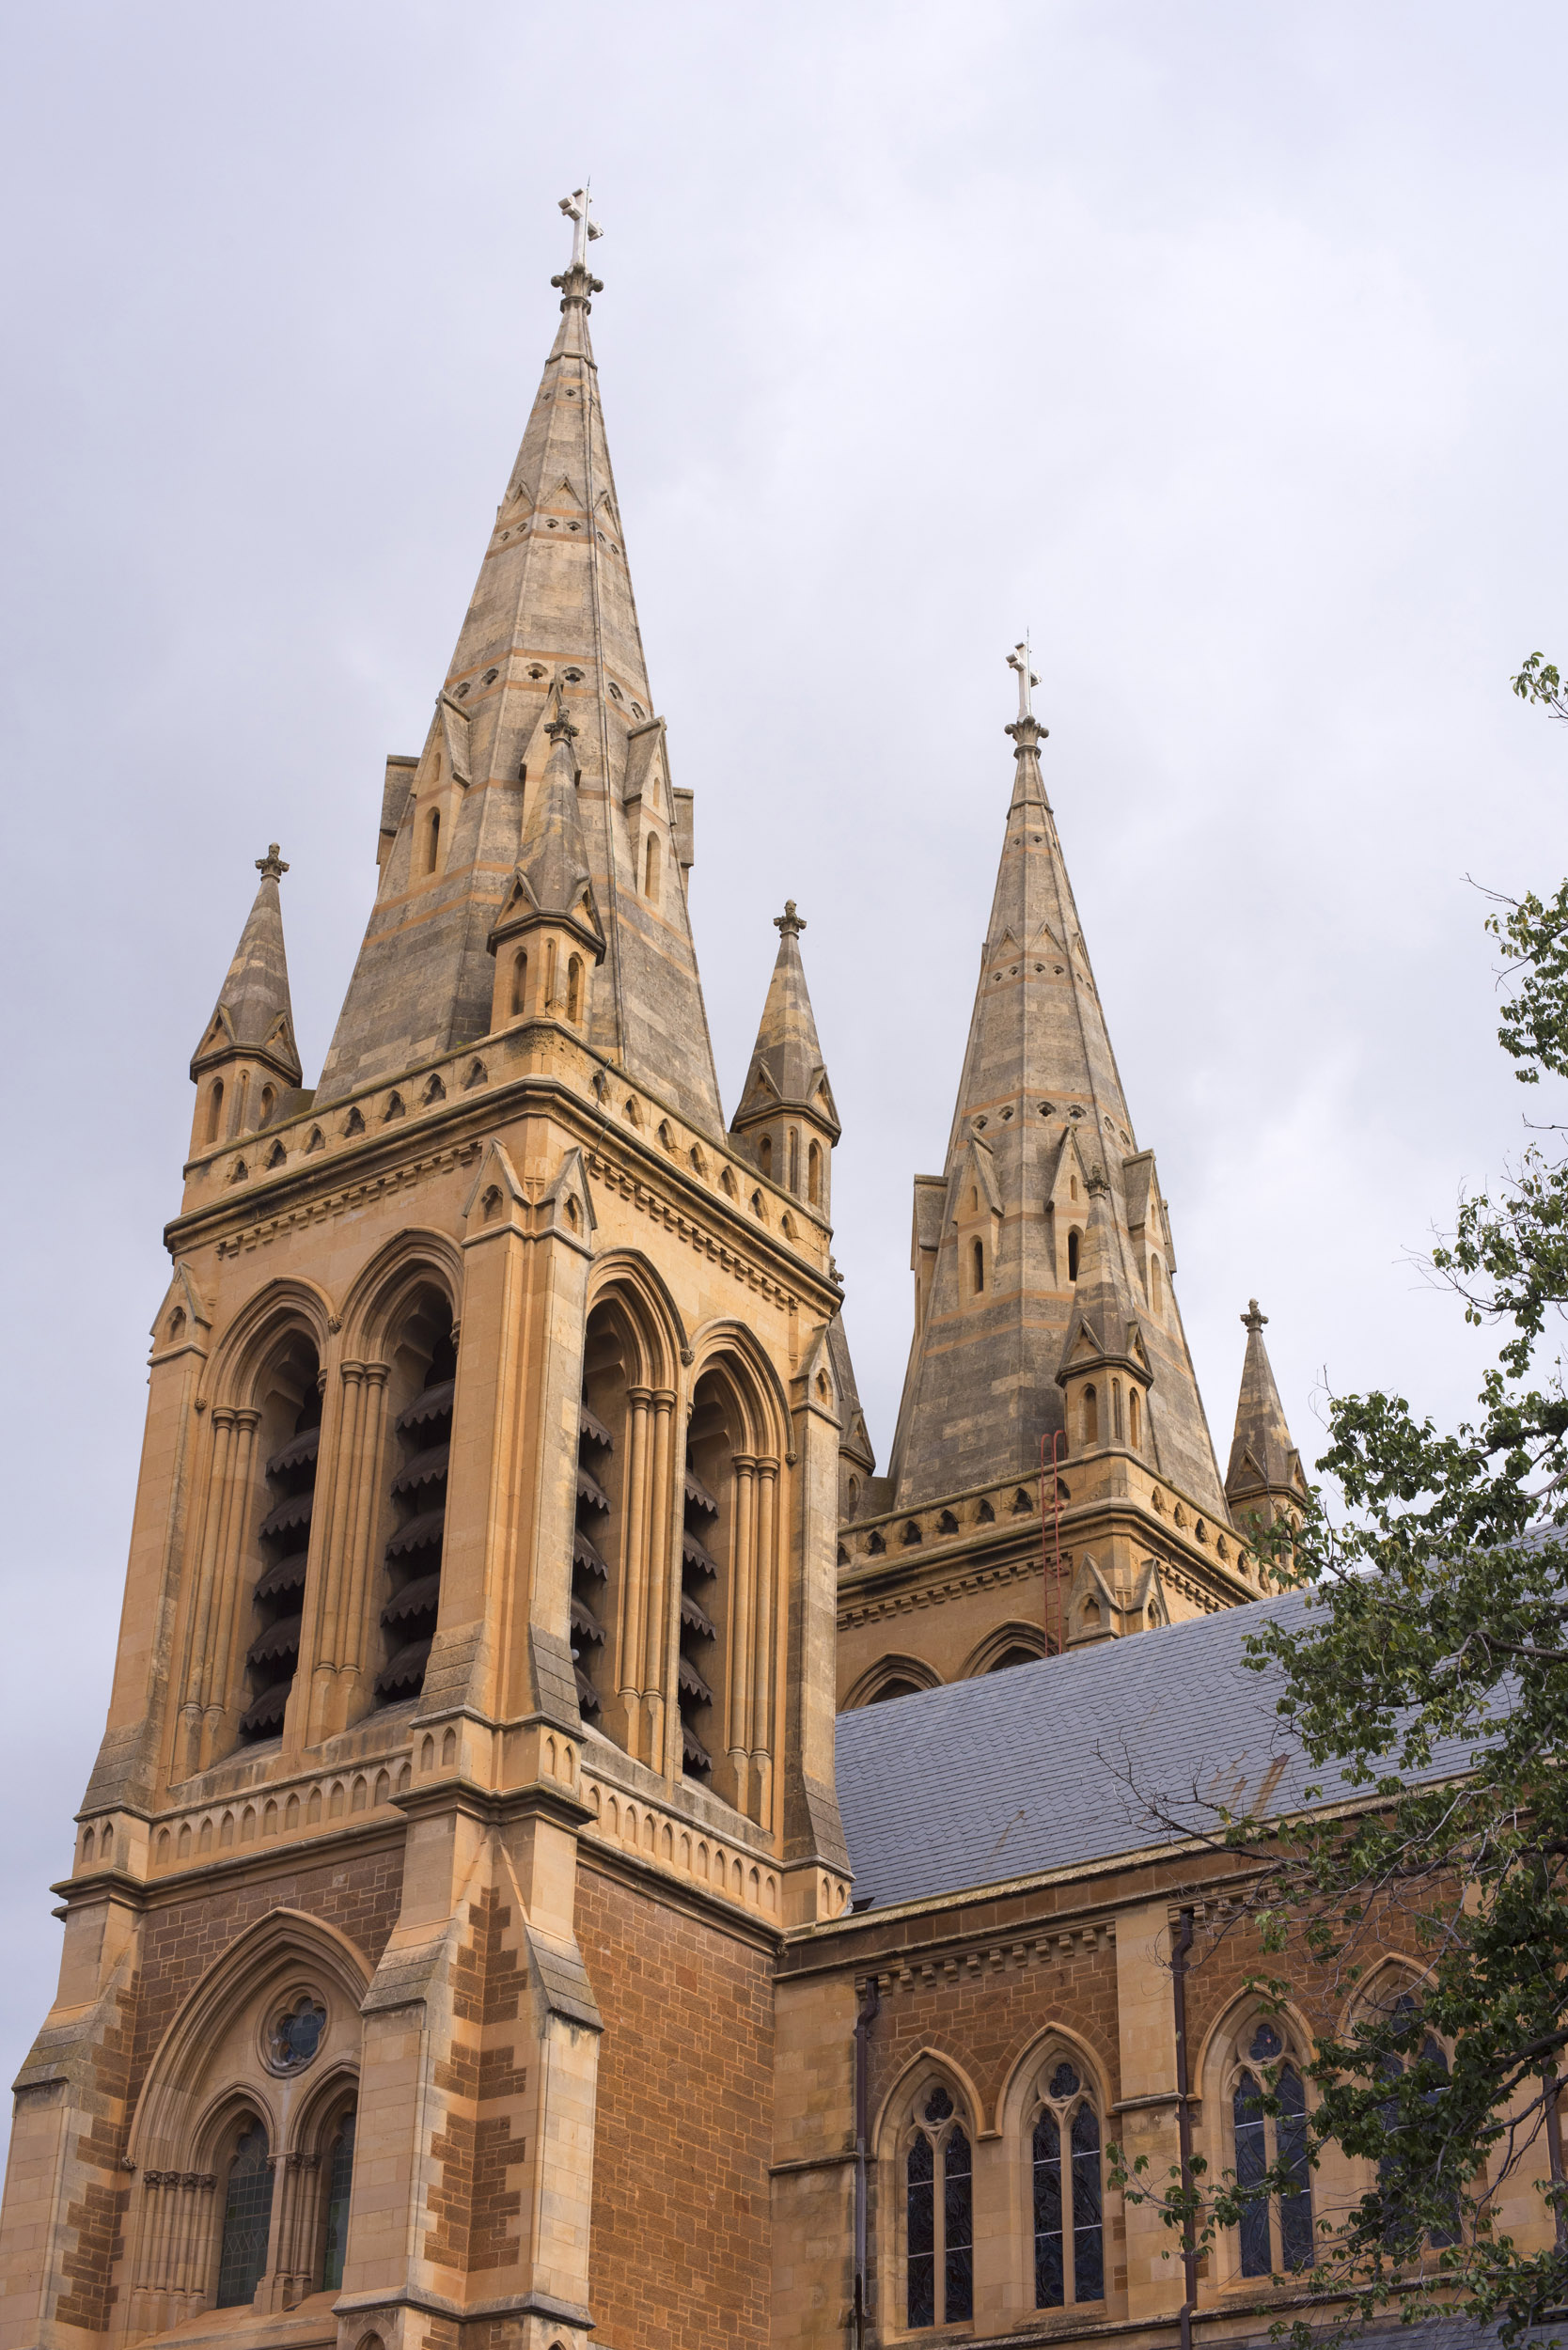 Ornate stone spires of Adelaide Cathedral, Australia against a cloudy grey sky viewed from below